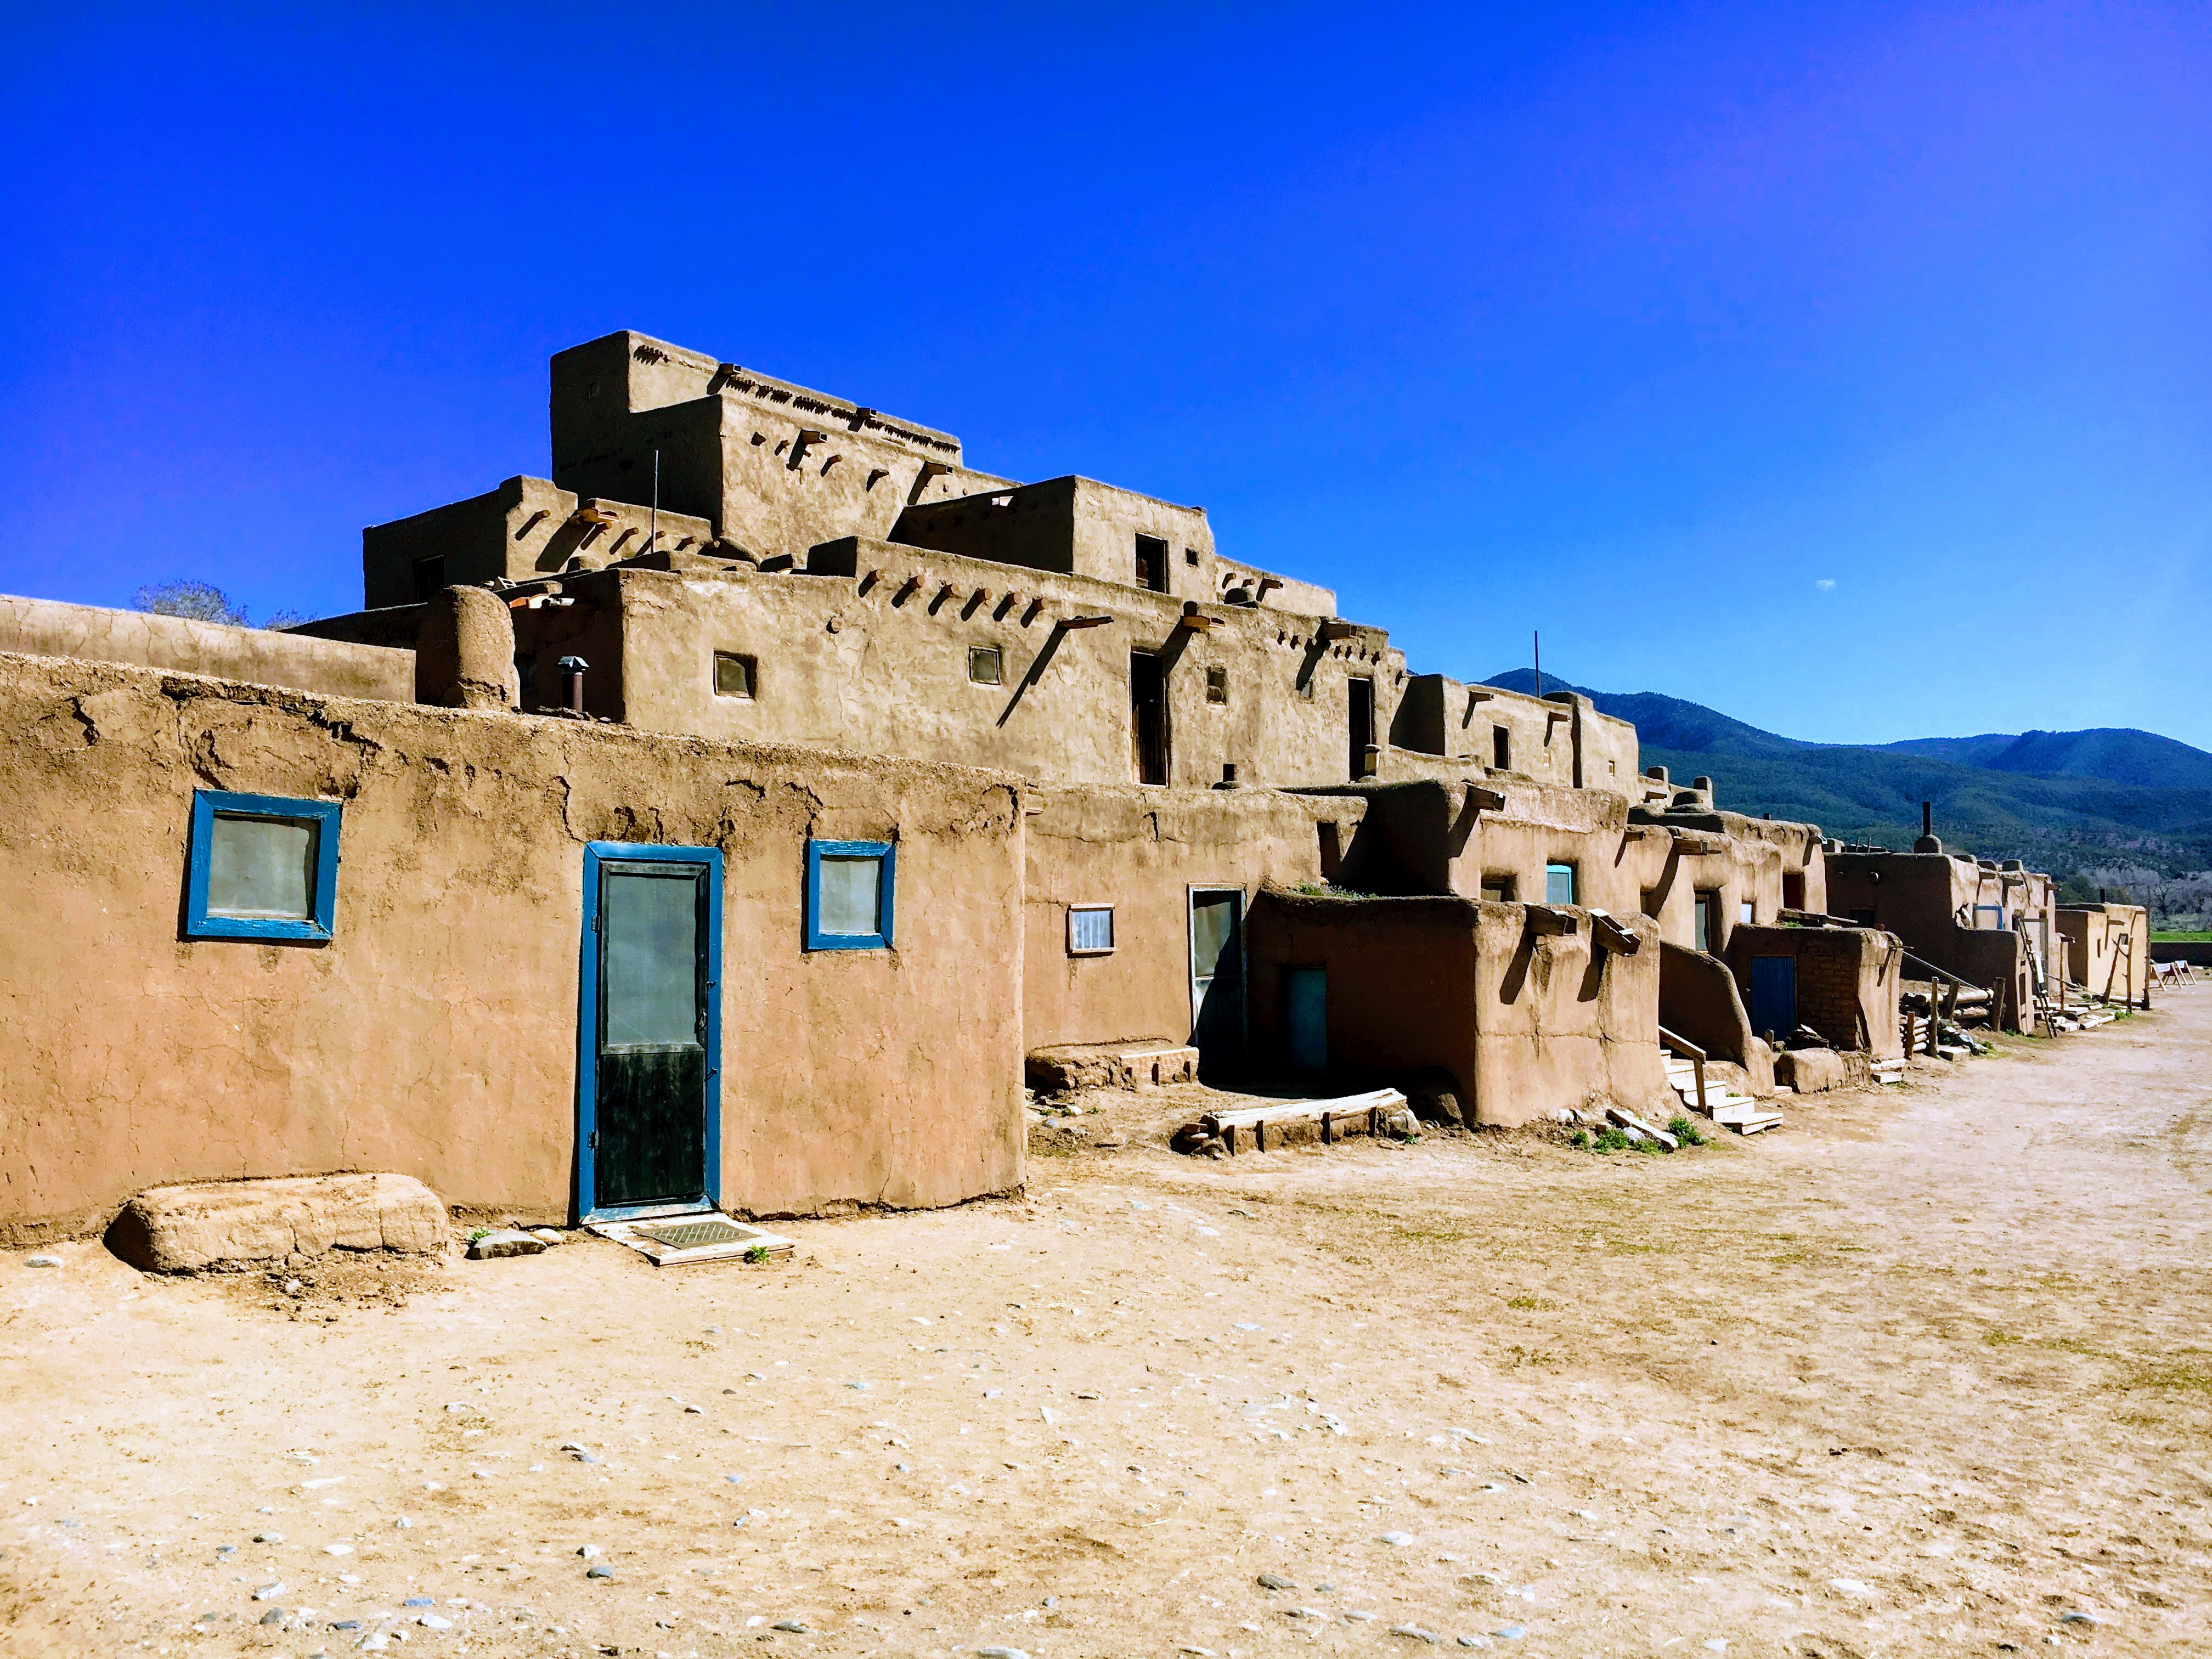 The Taos Pueblo, over 1000 years old